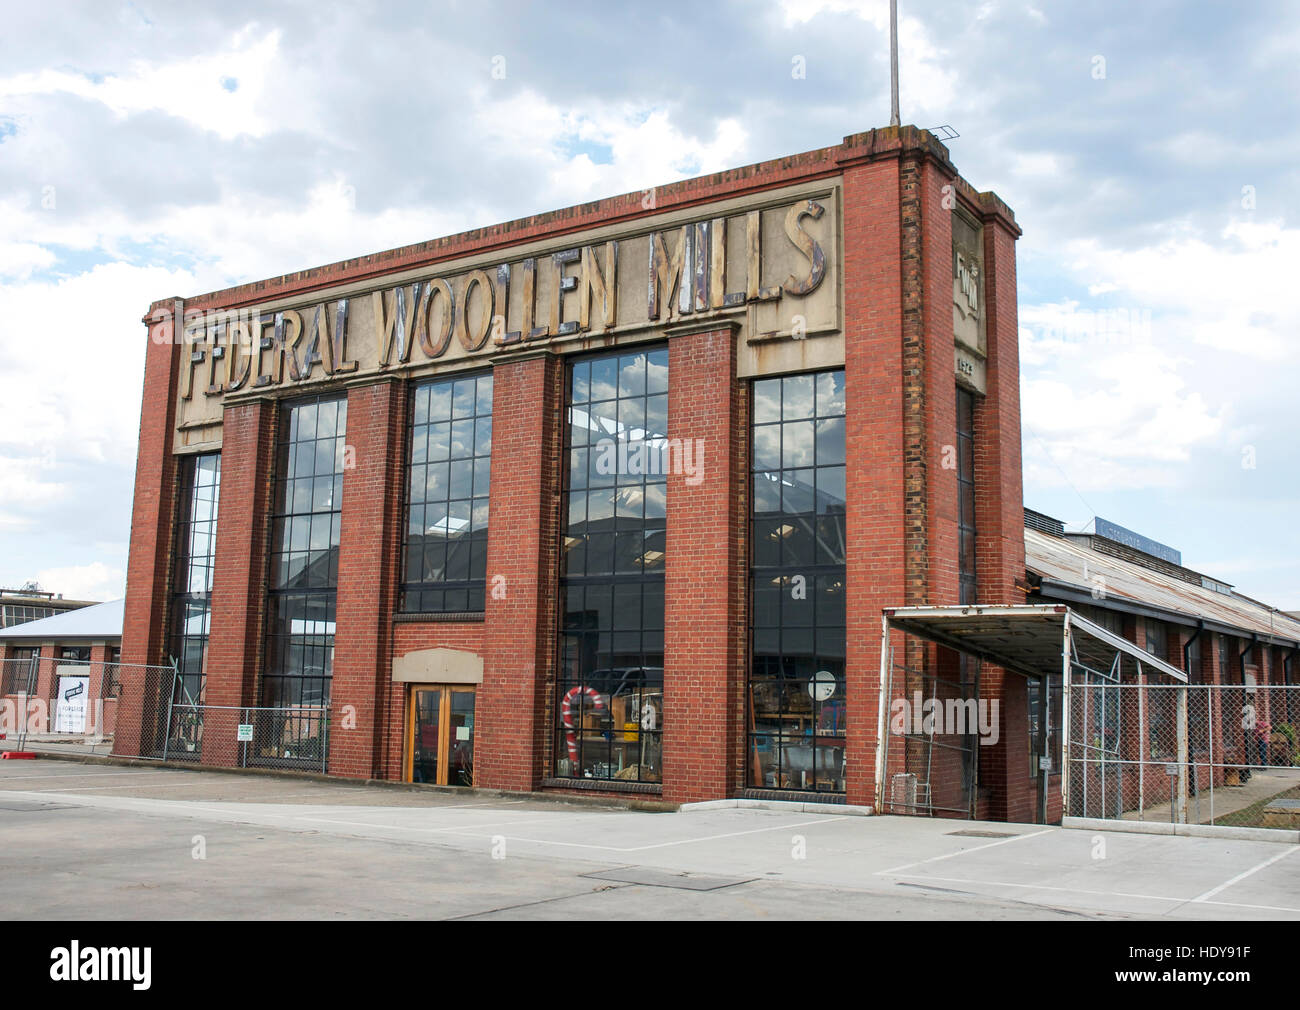 The former Federal Woollen Mills in Geelong, Victoria, Australia -- now converted to a popular antique mall. - Stock Image